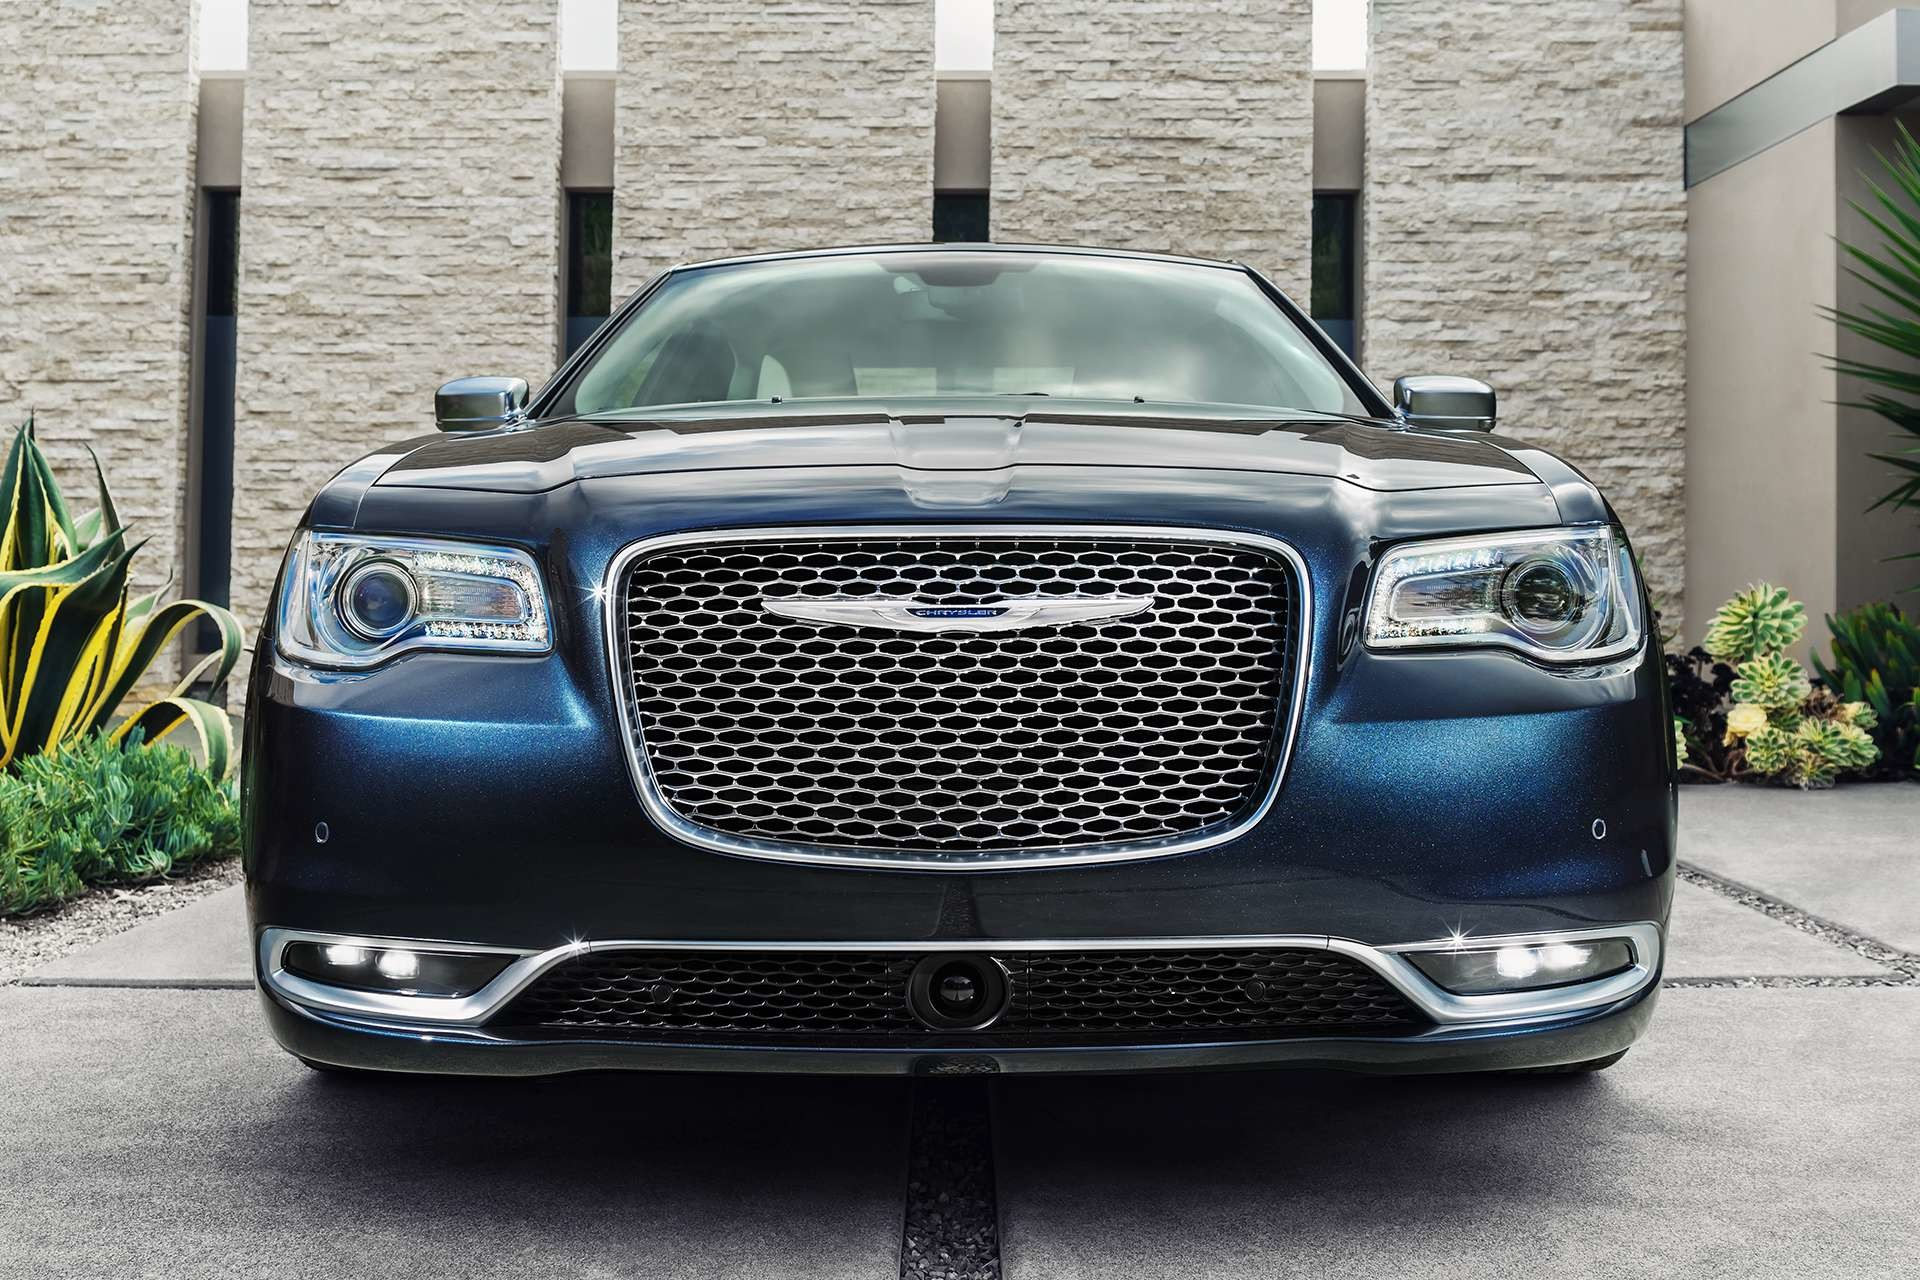 2019 Chrysler 300 with LED fog lamps